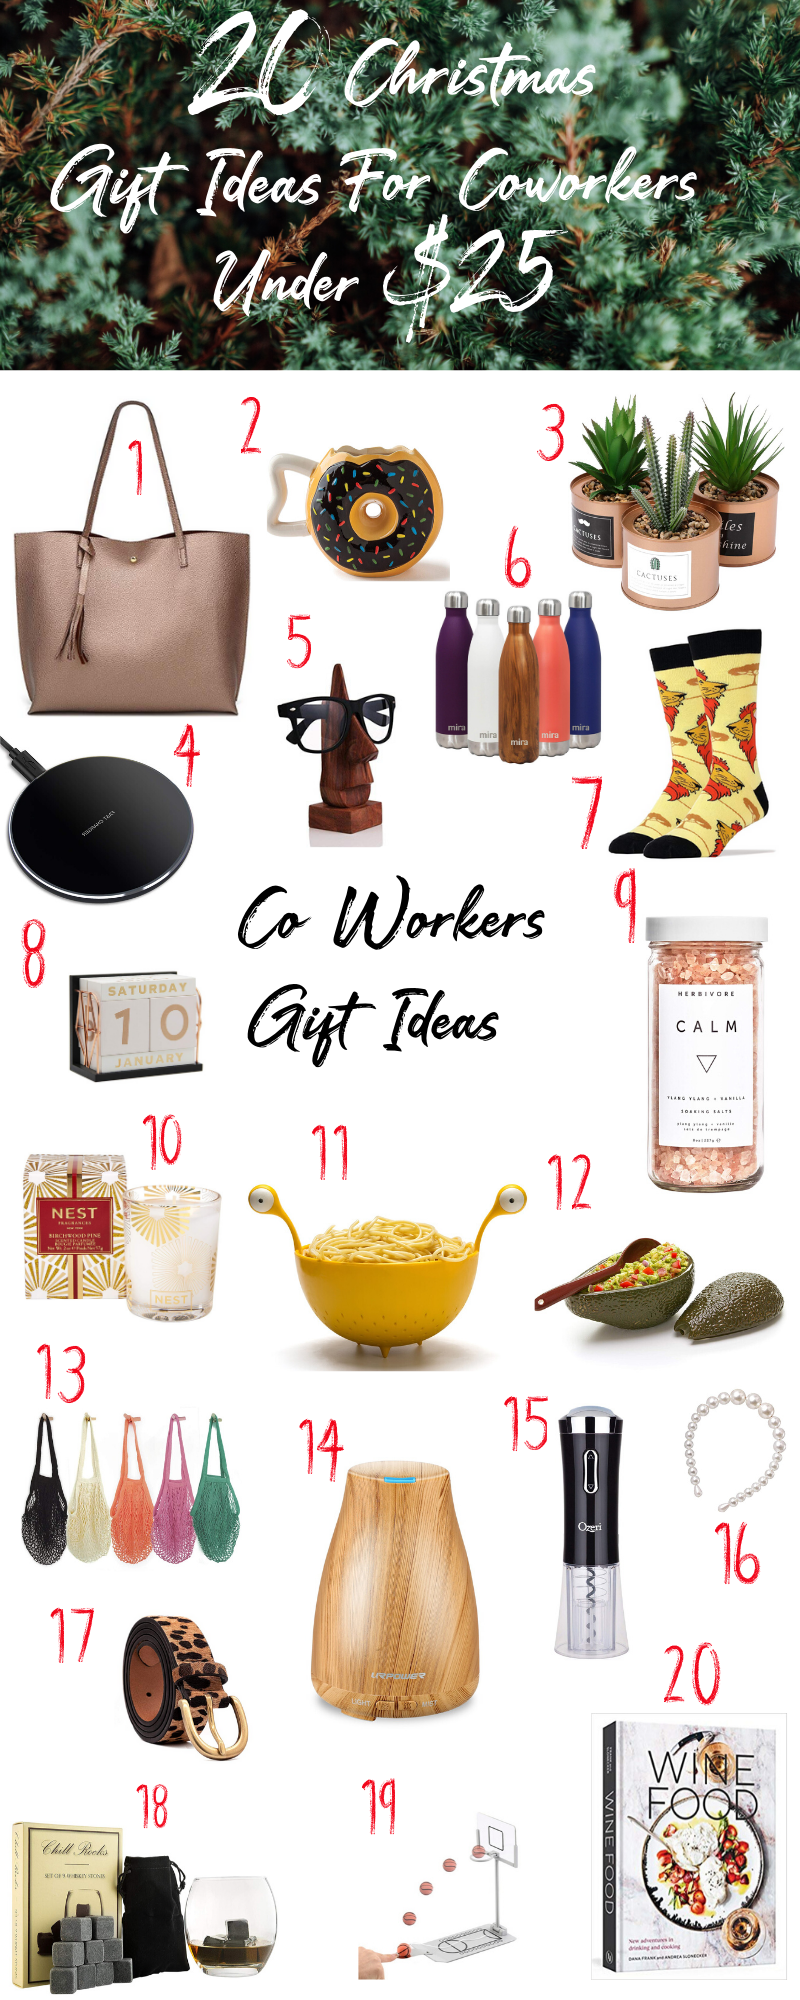 List Of Good Christmas Gifts For Husband Under 20 Pinterest